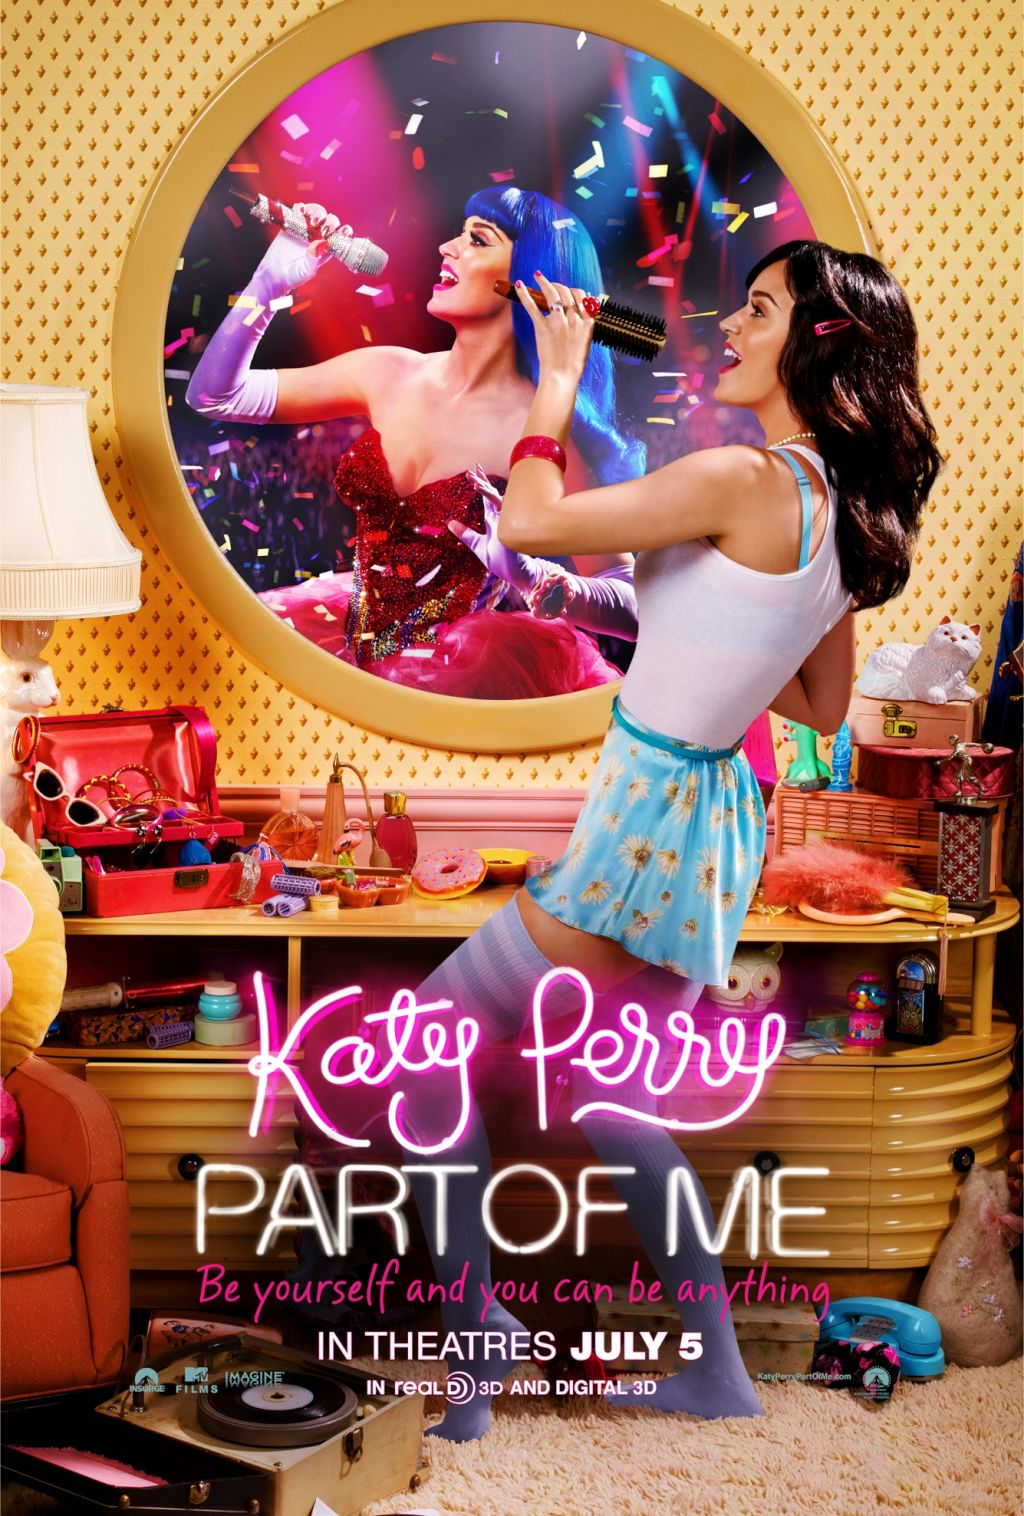 http://4.bp.blogspot.com/-85fXCPptlbs/T_vwRovMatI/AAAAAAAAAY4/QRQmKWfttYk/s1600/katy-perry-part-of-me-3d-movie-poster.jpg